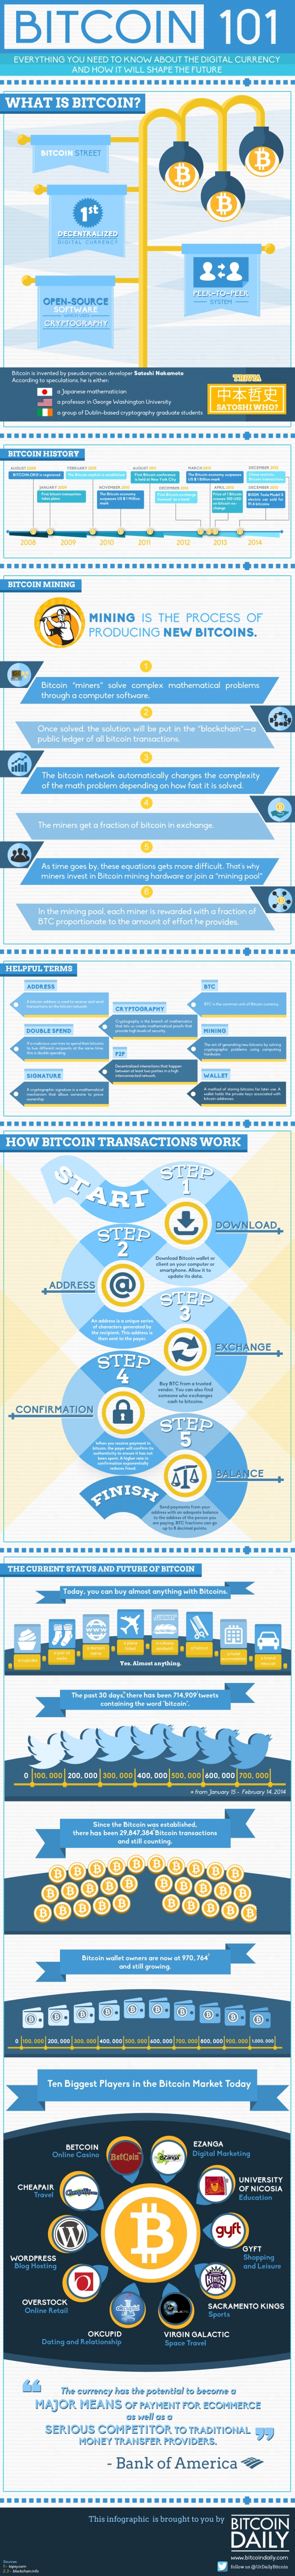 Everything you wanted to know about bitcoin